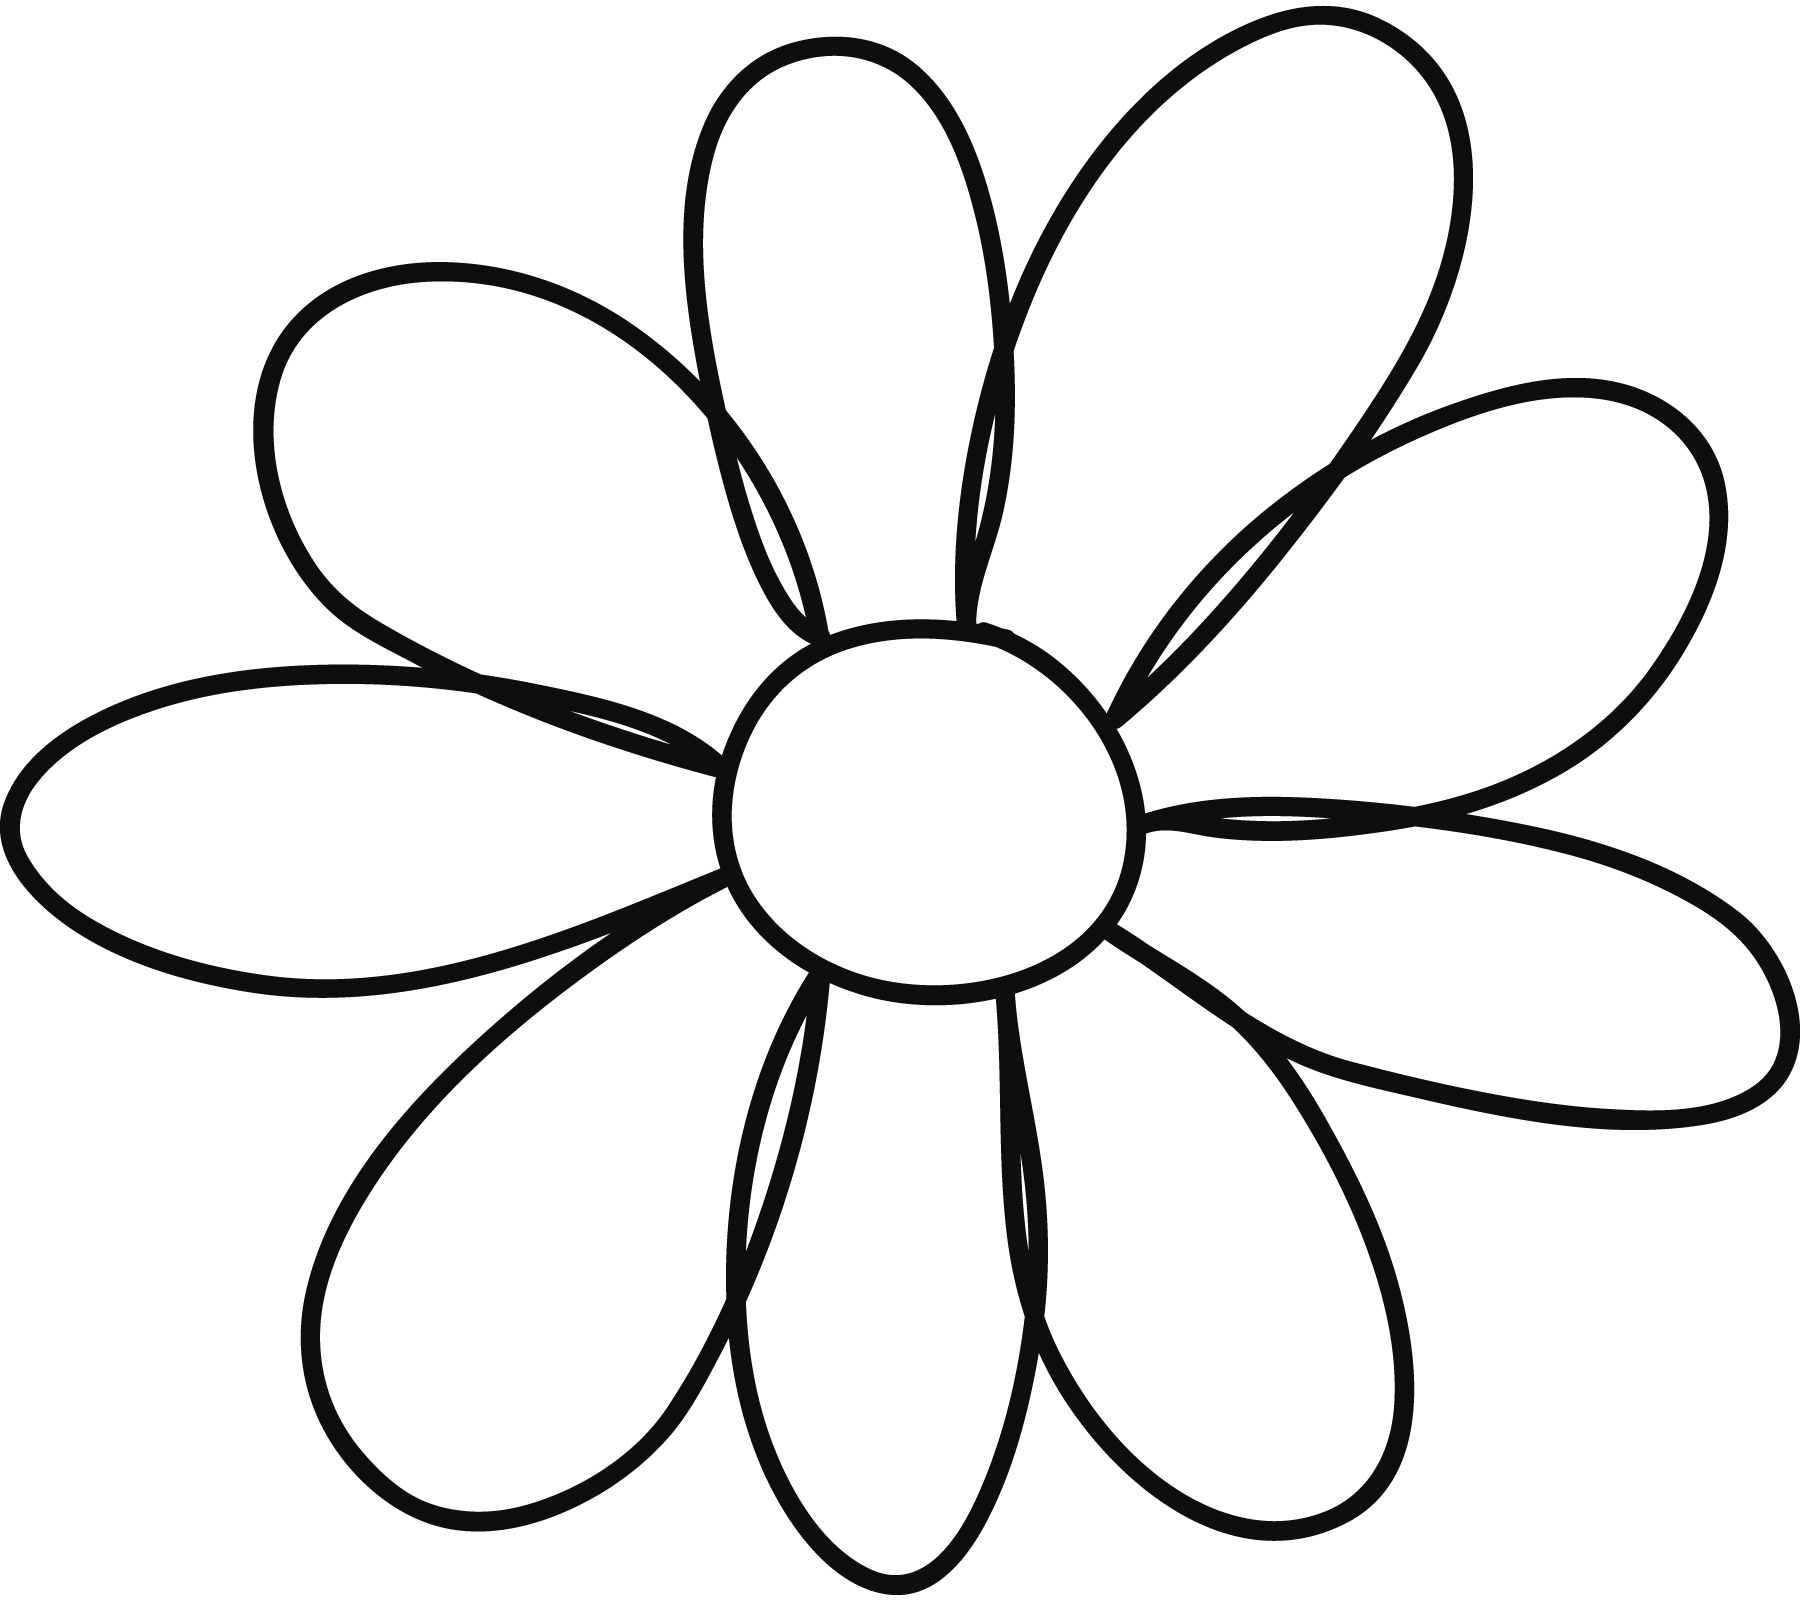 Daisy Flower Outline   Free download on ClipArtMag